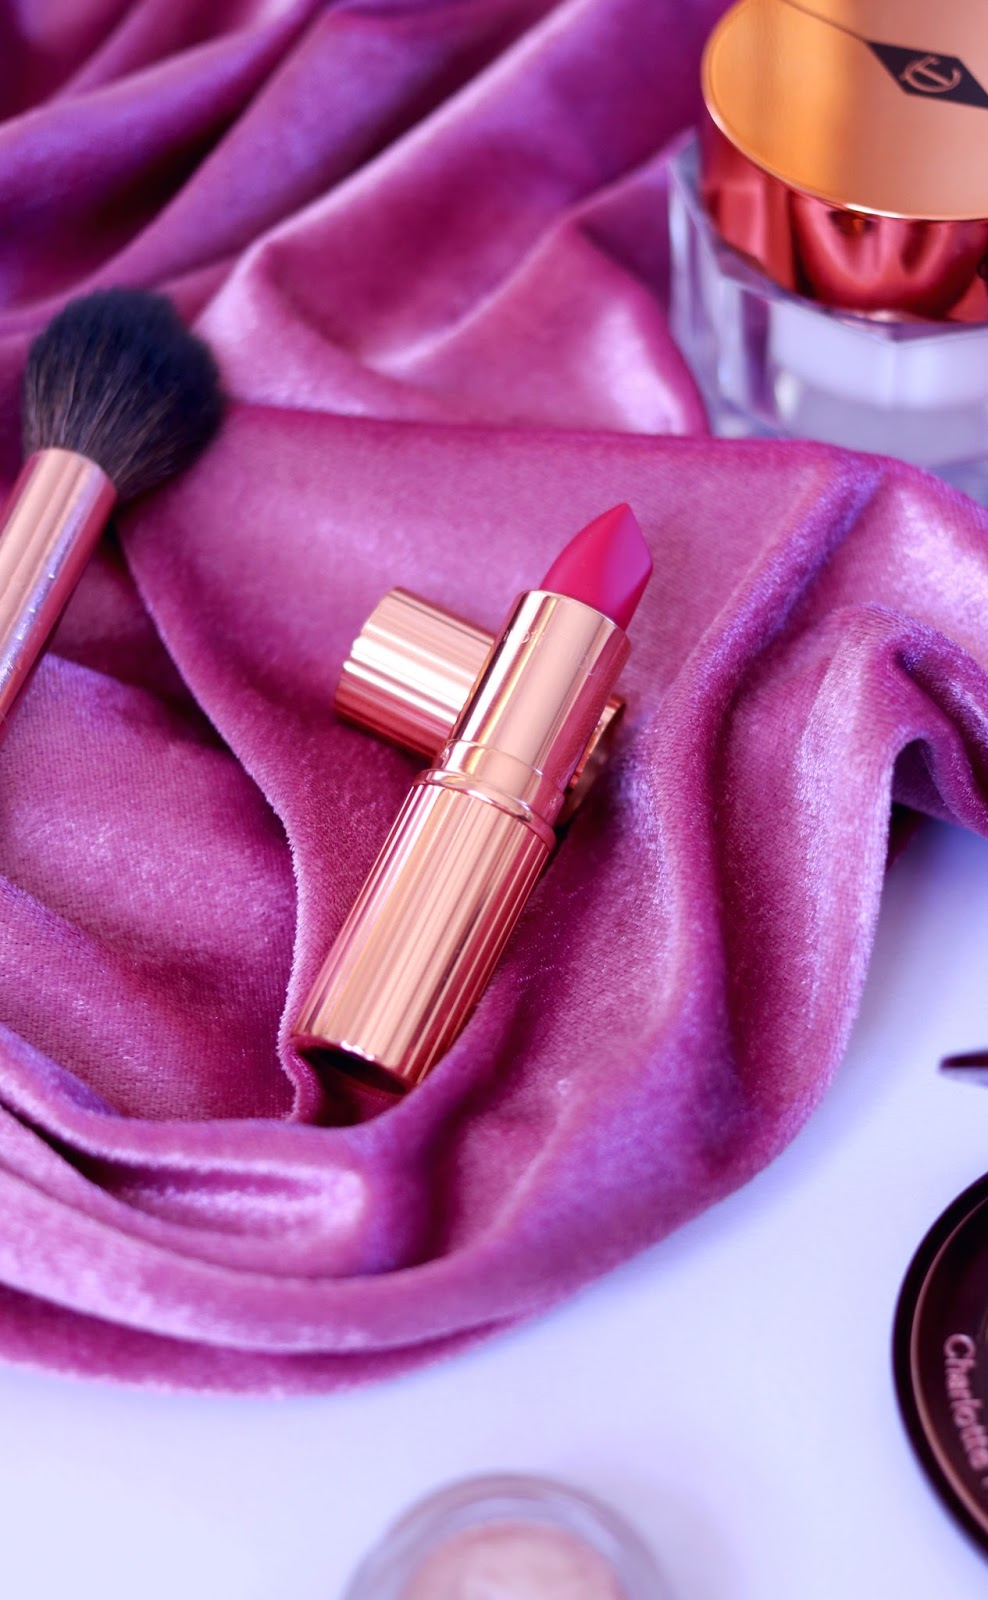 Charlotte Tilbury The Queen Lipstick